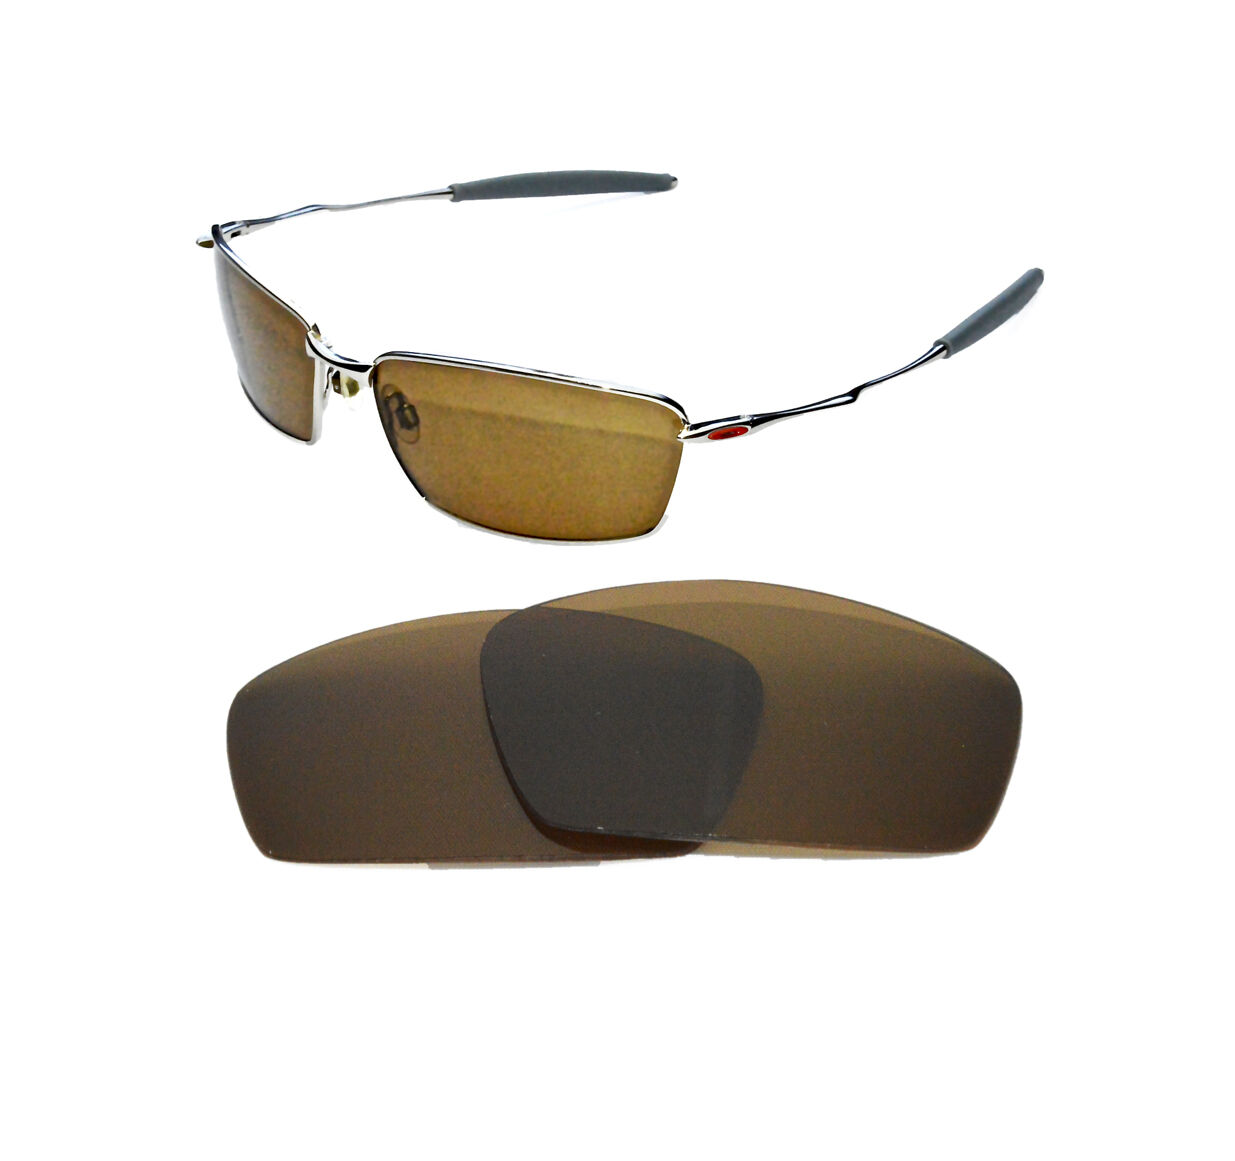 b859851866a3 NEW POLARIZED BRONZE REPLACEMENT LENS FOR OAKLEY SQUARE WHISKER SUNGLASSES